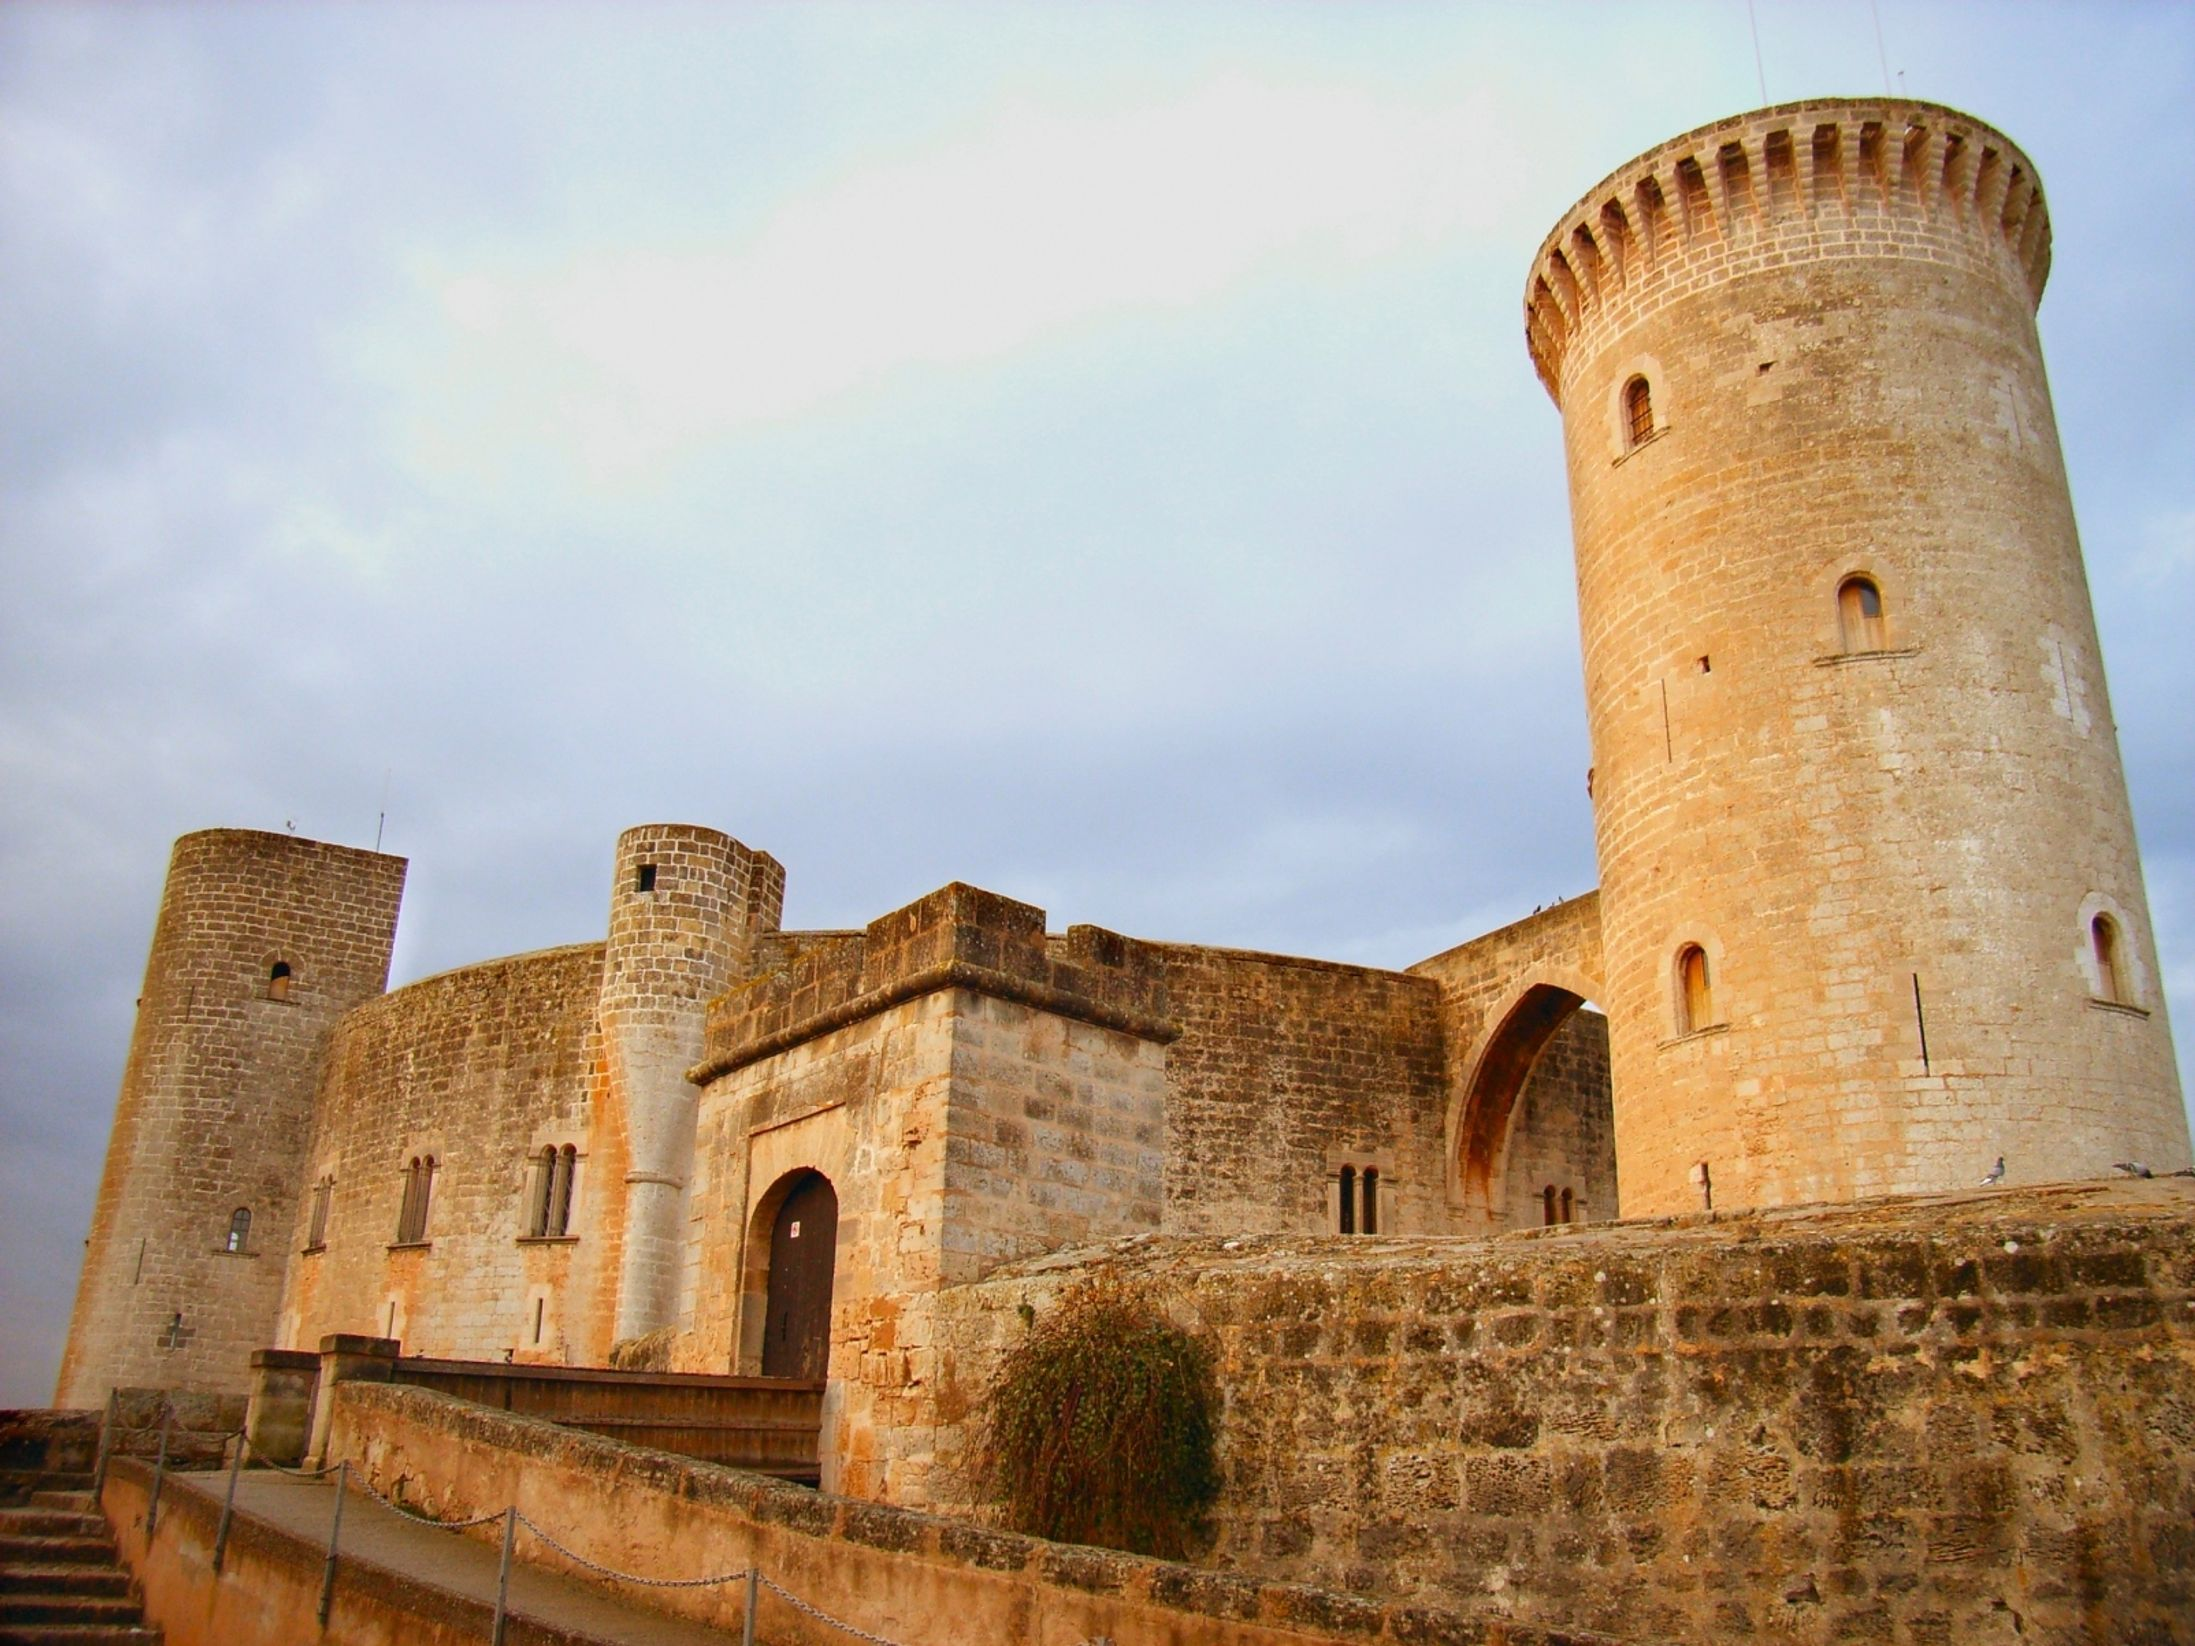 Castell de Bellver sits pretty atop a hill on the outskirts of Mallorca's premier destination, Palma